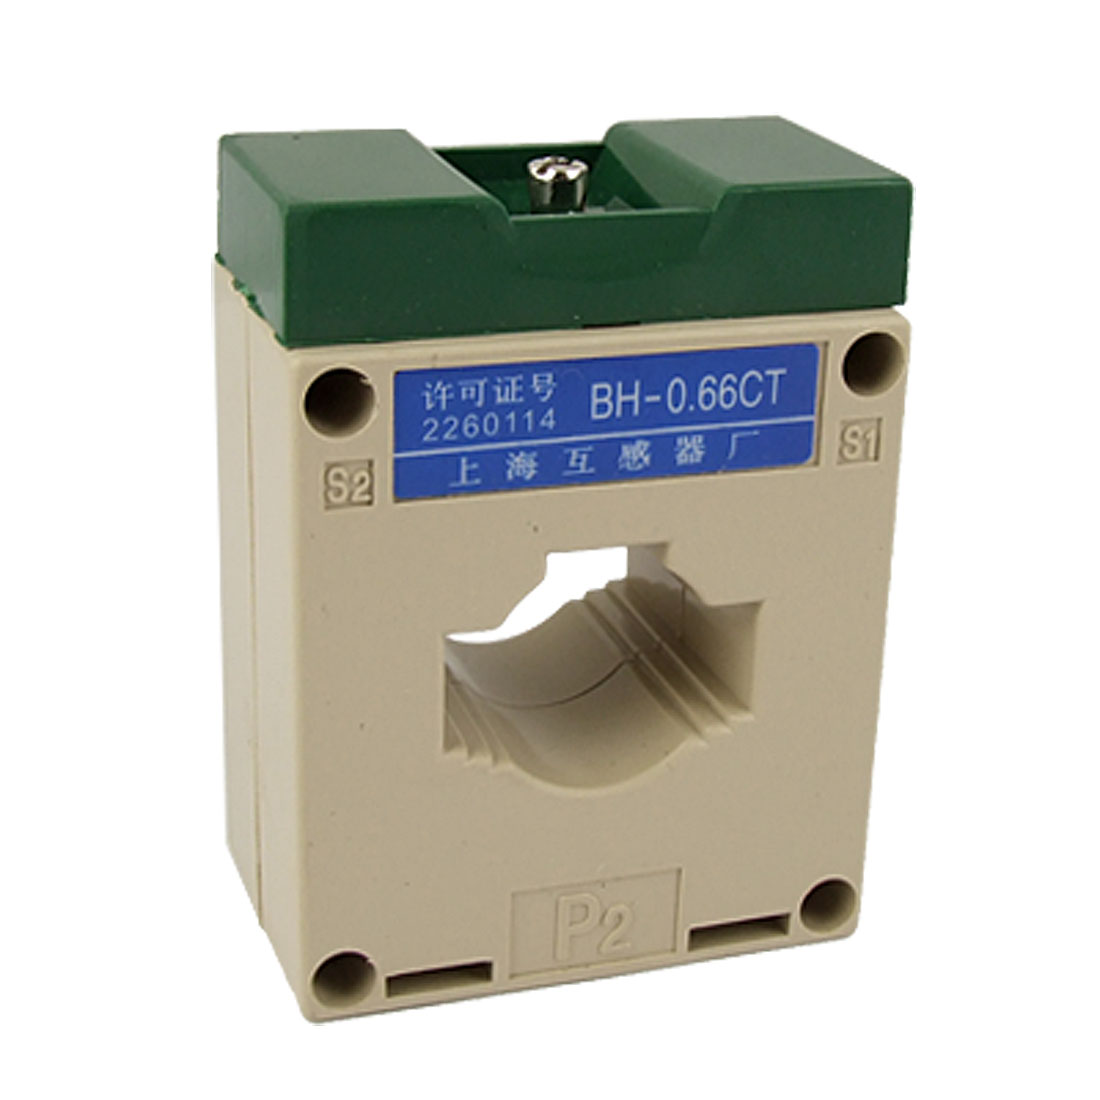 0.66KV Rated Voltage 0.5 Accuracy Class 30/5 Current Transformer